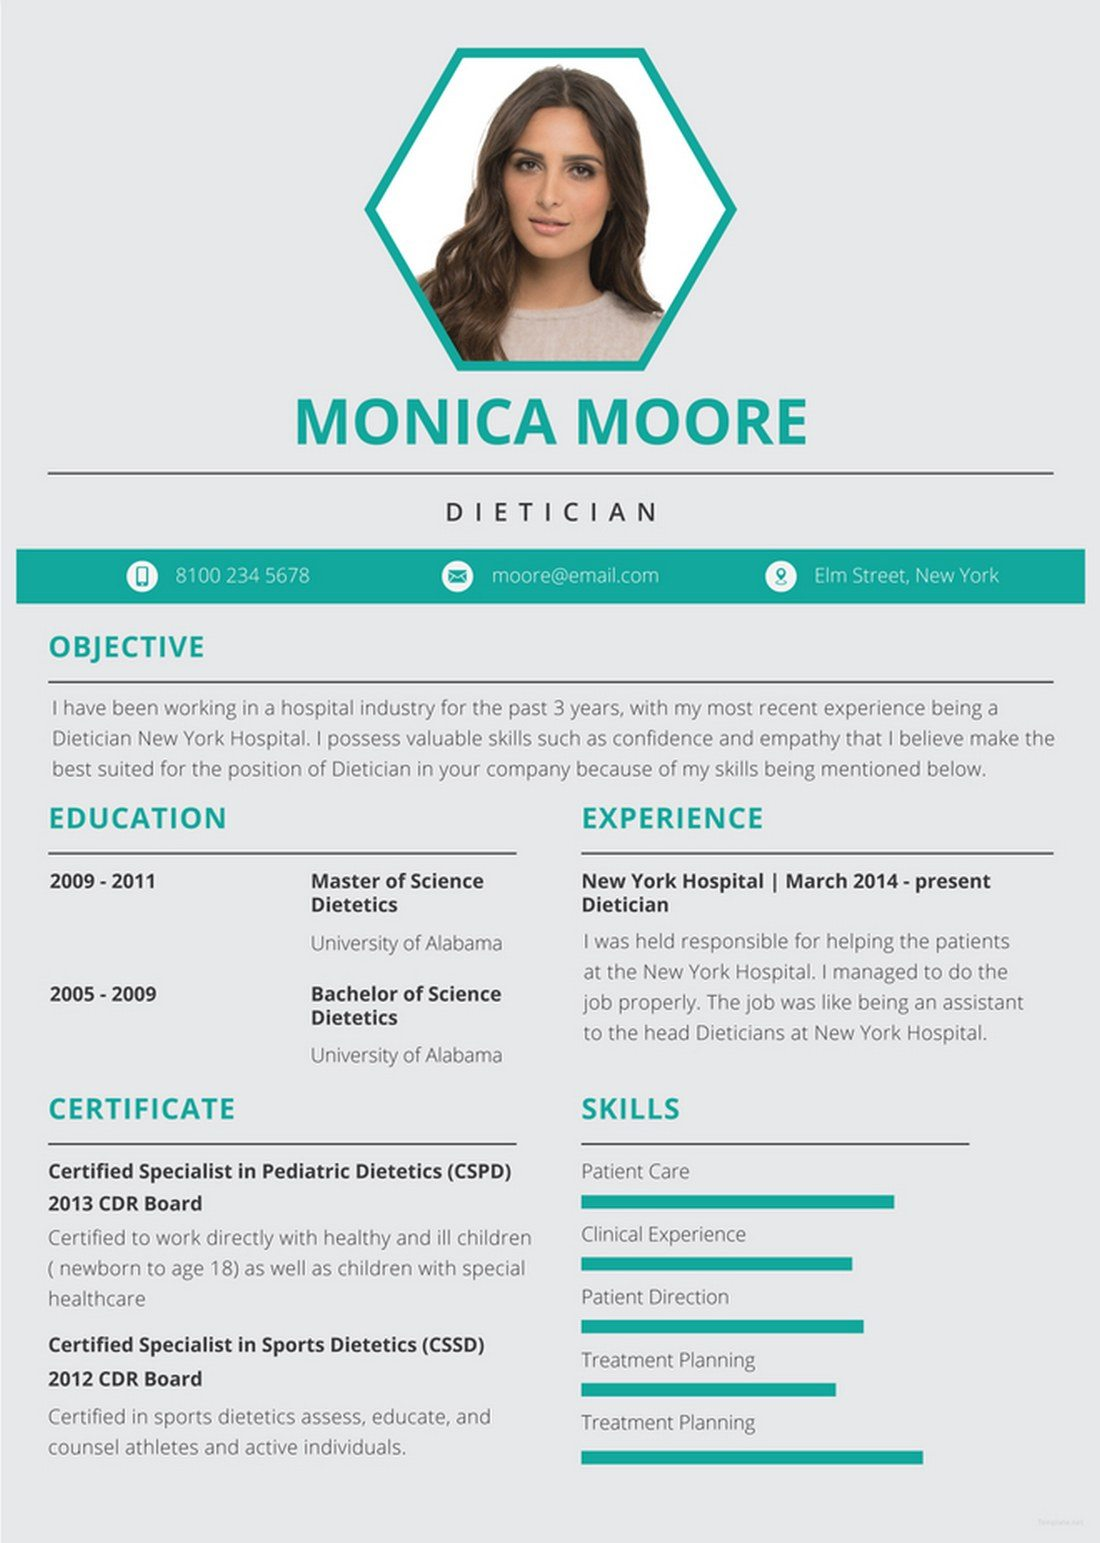 Free-Dietician-Resume-Template 20+ Best Pages Resume & CV Templates design tips